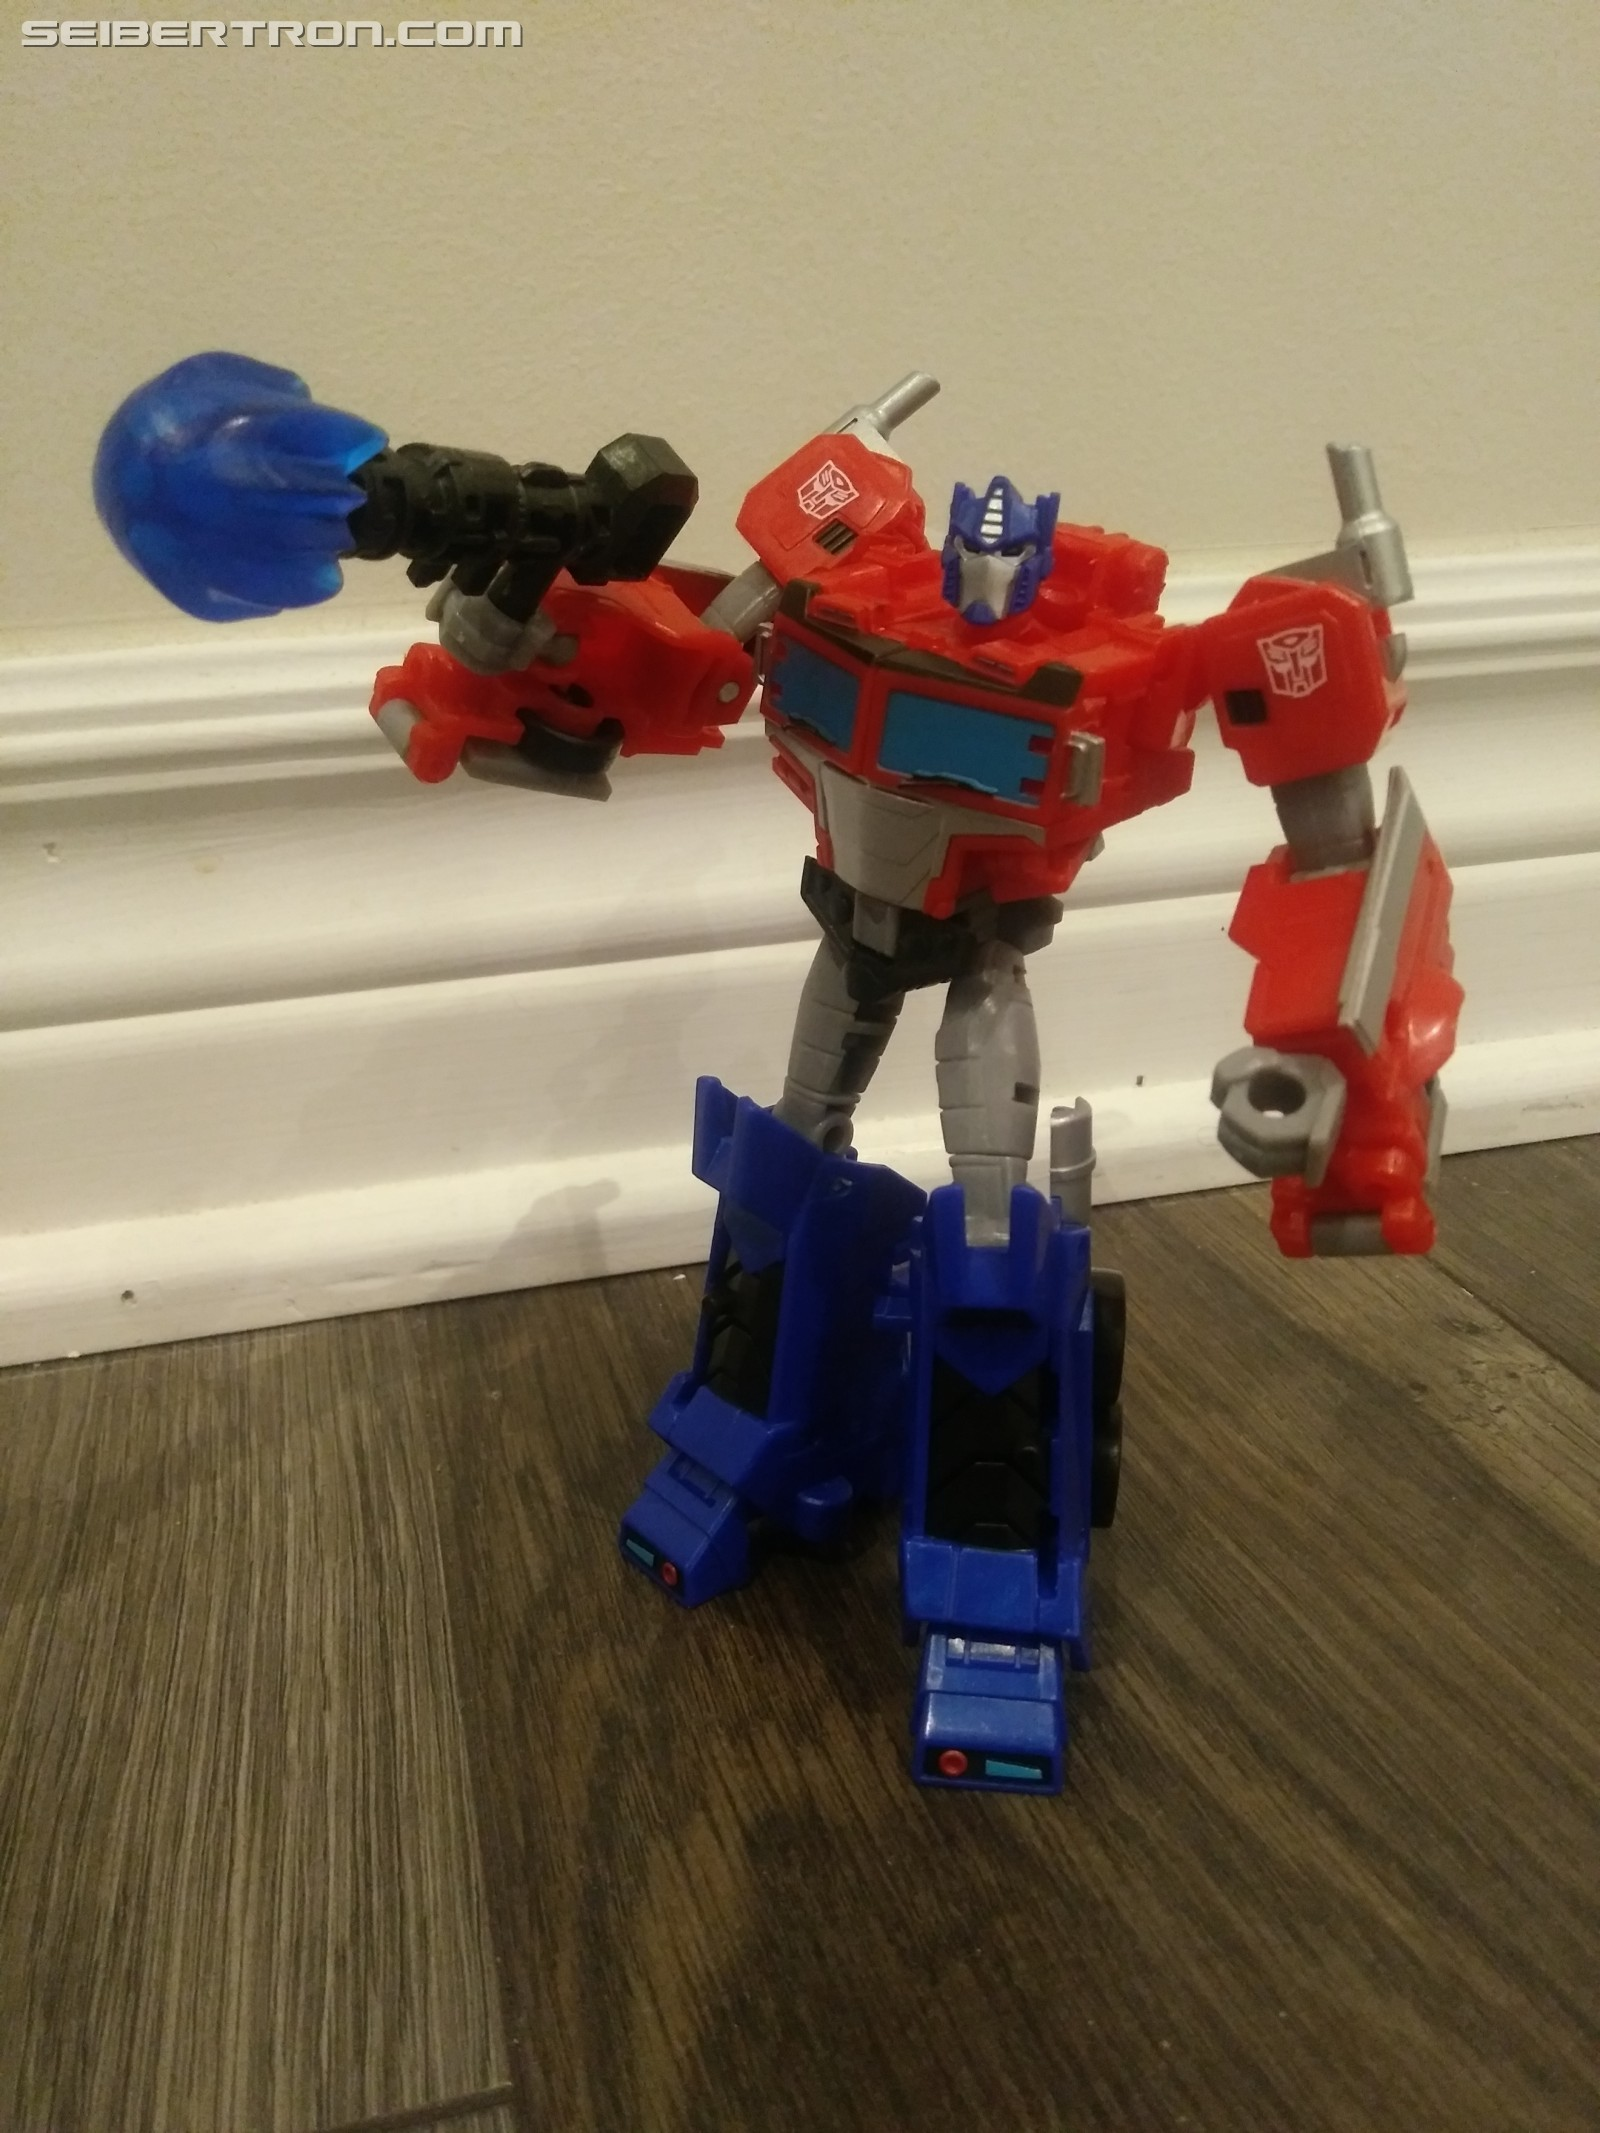 Transformers News: Pictorial Review for Deluxe Optimus from Transformers Cyberverse